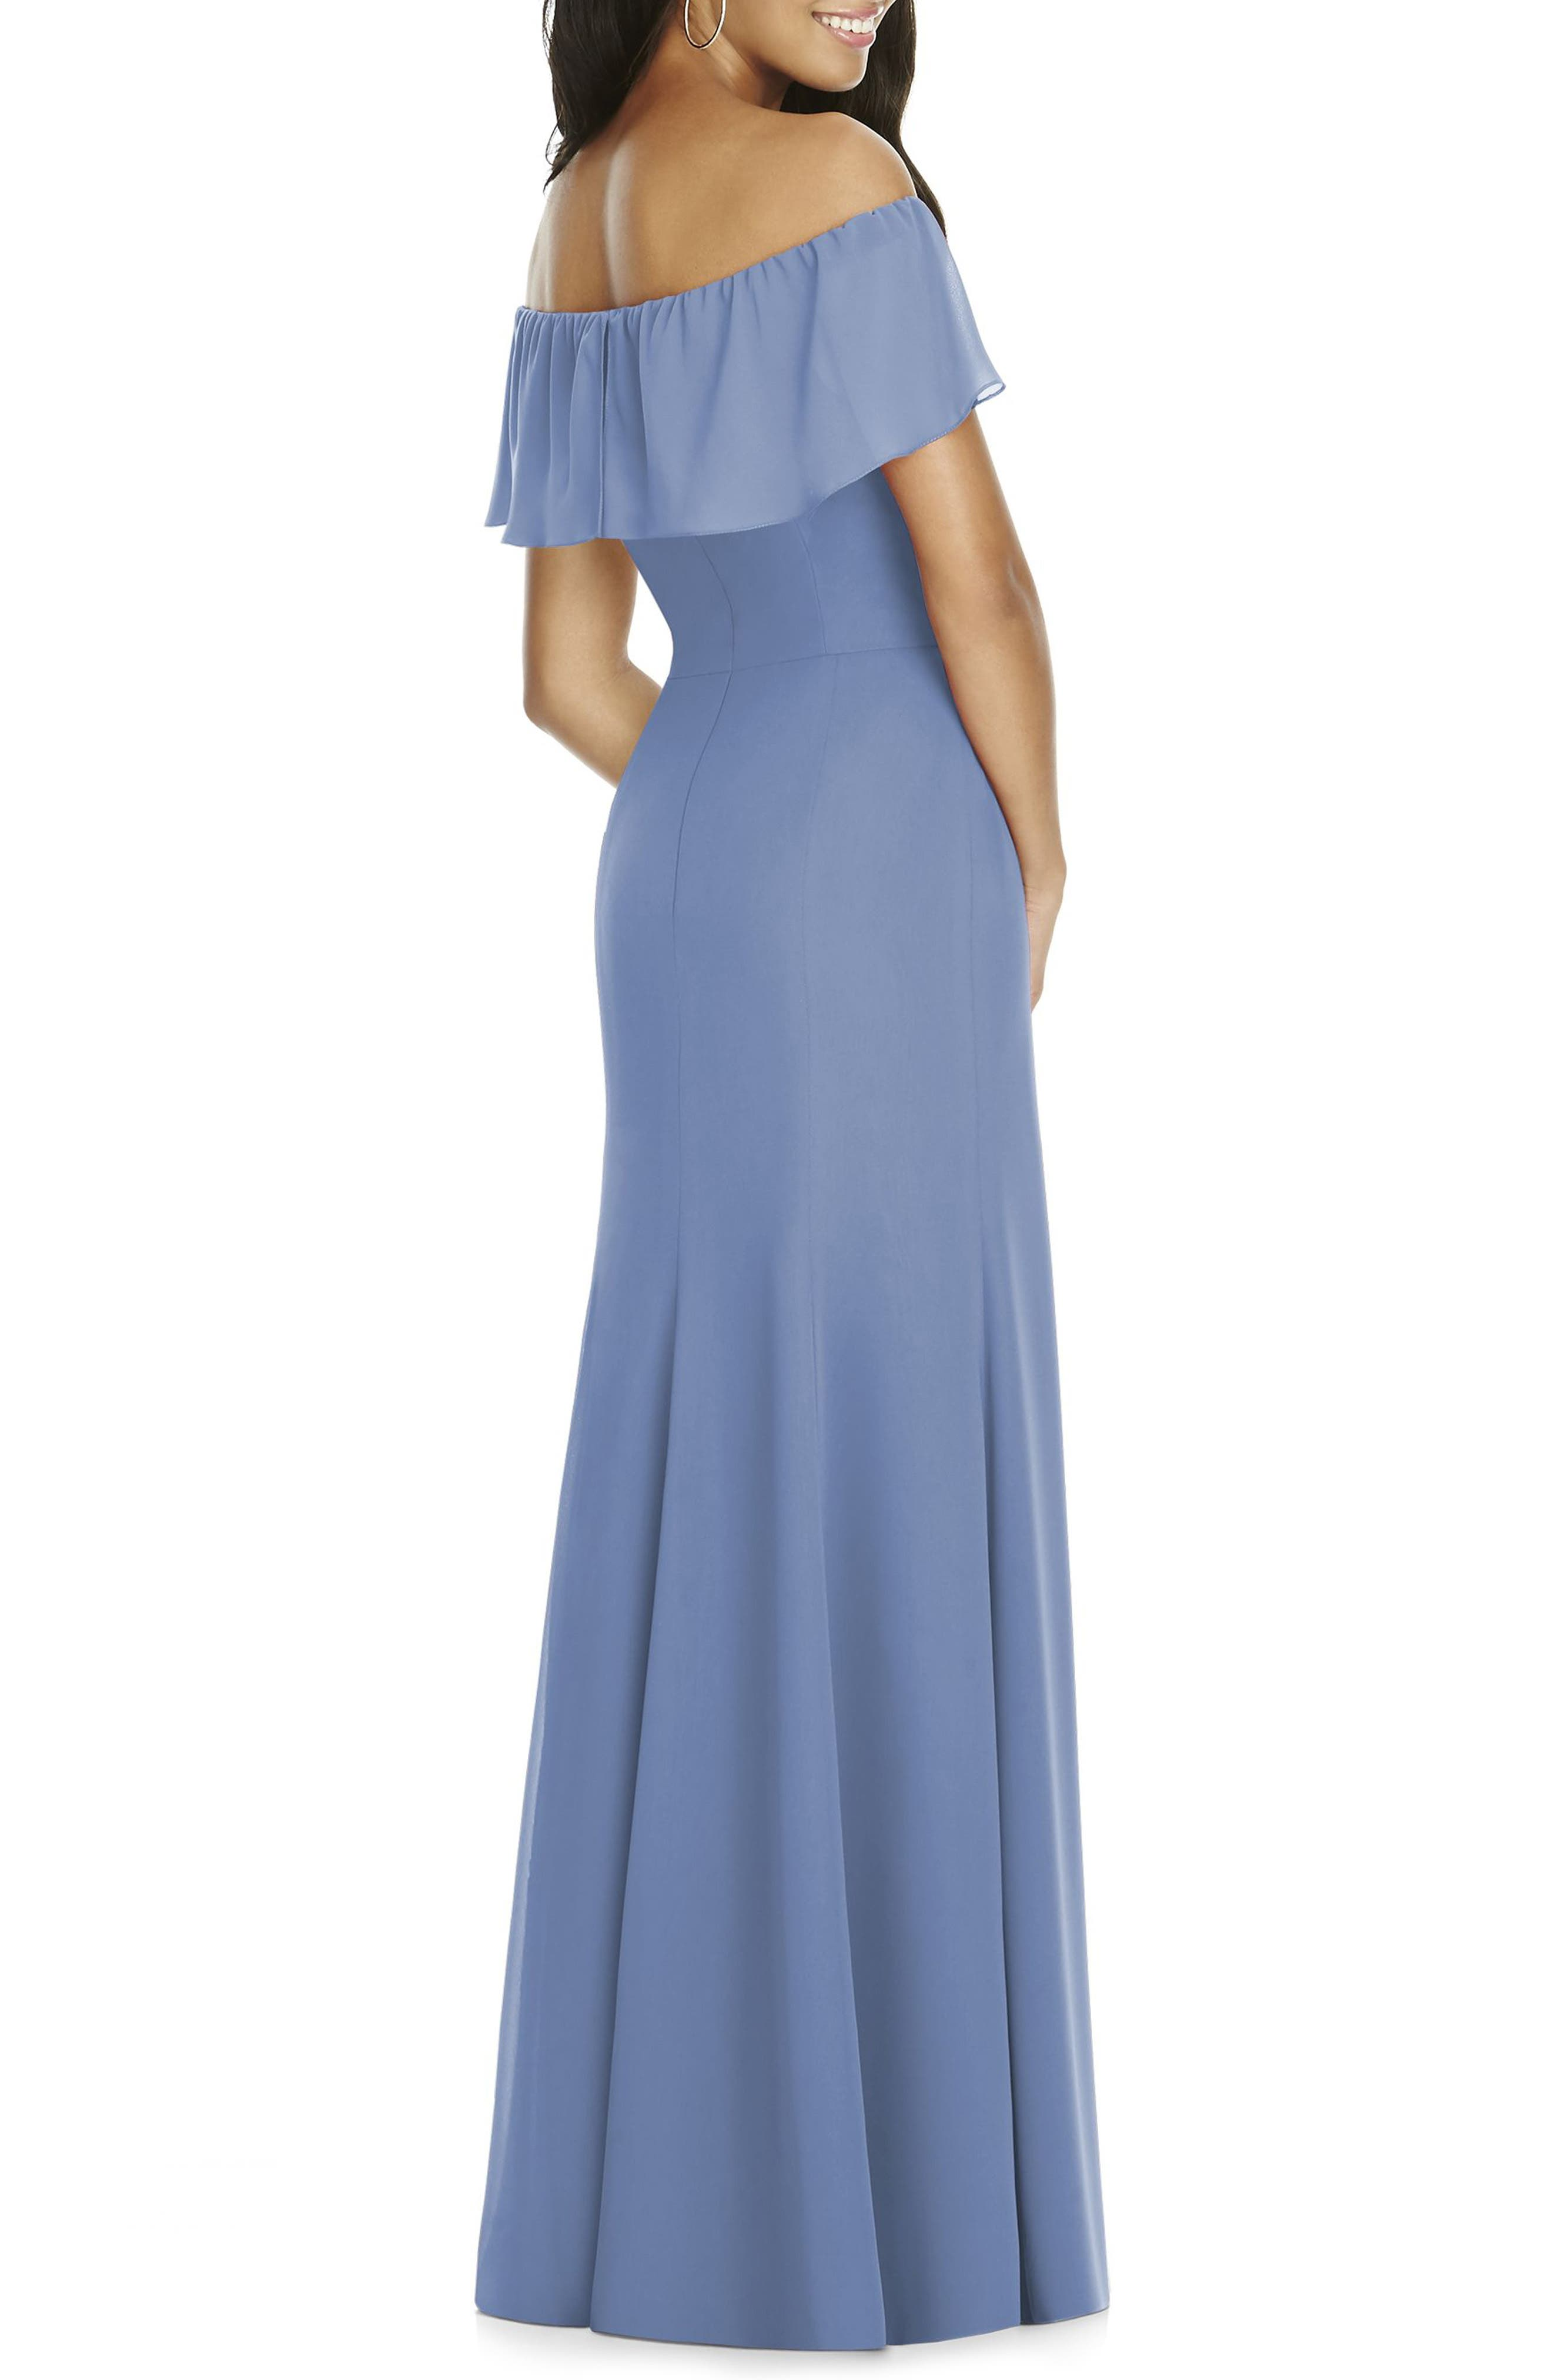 Ruffle Off the Shoulder Chiffon Gown,                             Alternate thumbnail 2, color,                             452